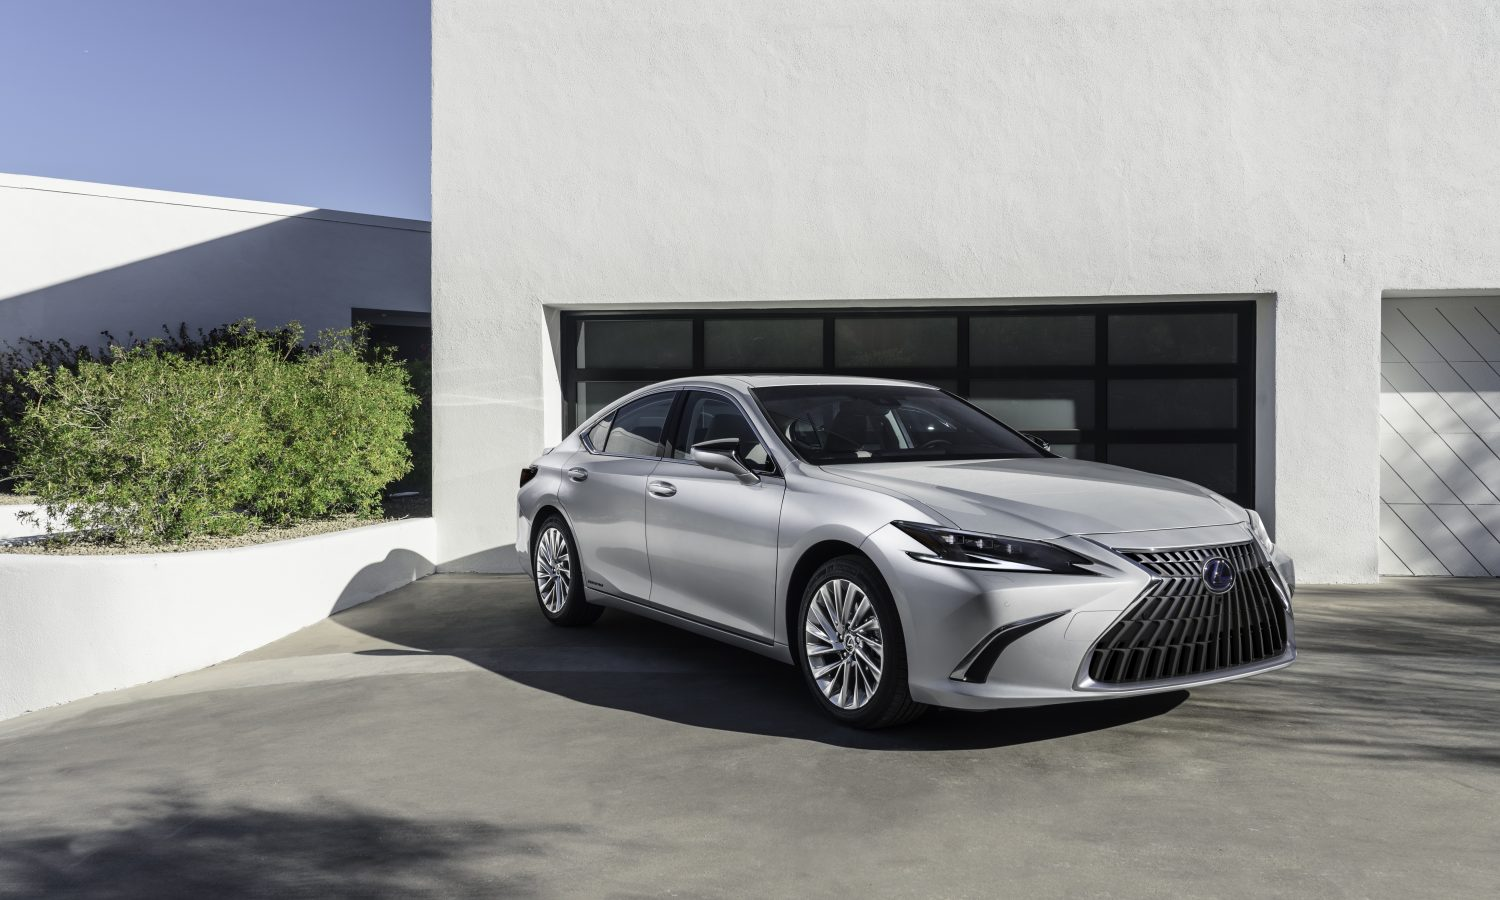 LEXUS ES FAMILY RETURNS FOR 2022 WITH UPDATED TECH, SAFETY, FIRST-EVER 300H F SPORT GRADE